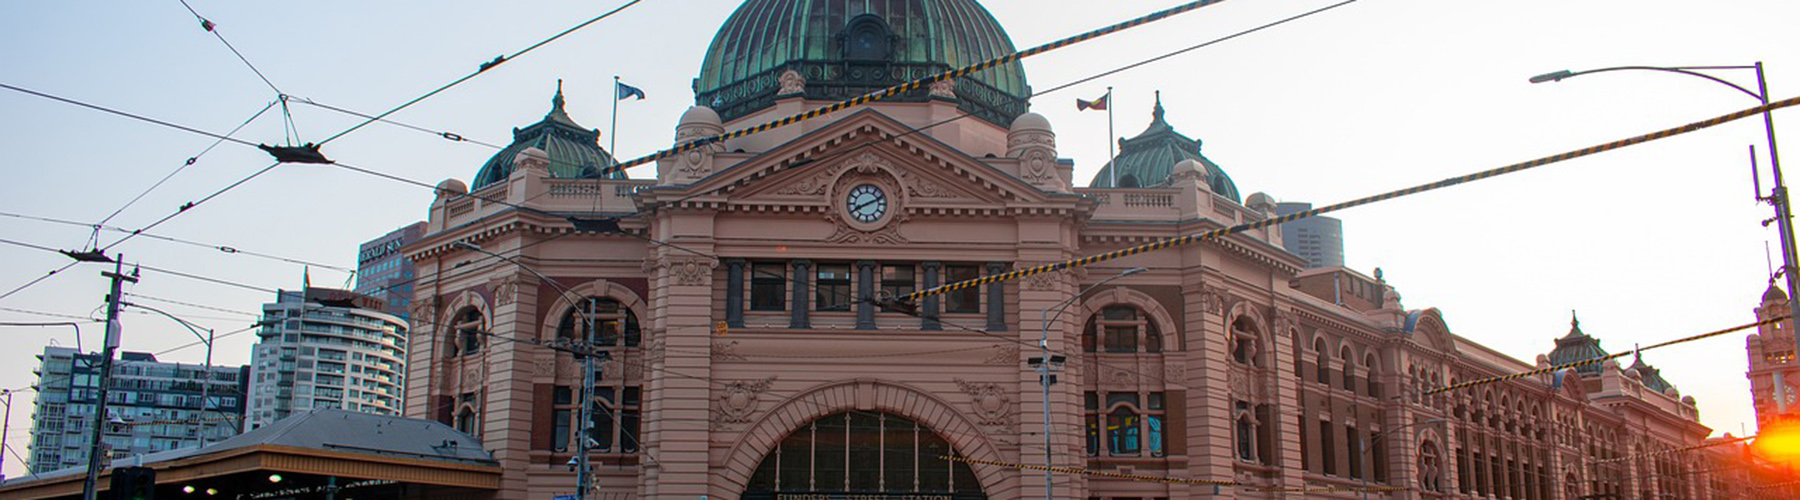 Melbourne – Hostels close to Flinders Street Station. Maps for Melbourne, Photos and Reviews for each hostel in Melbourne.